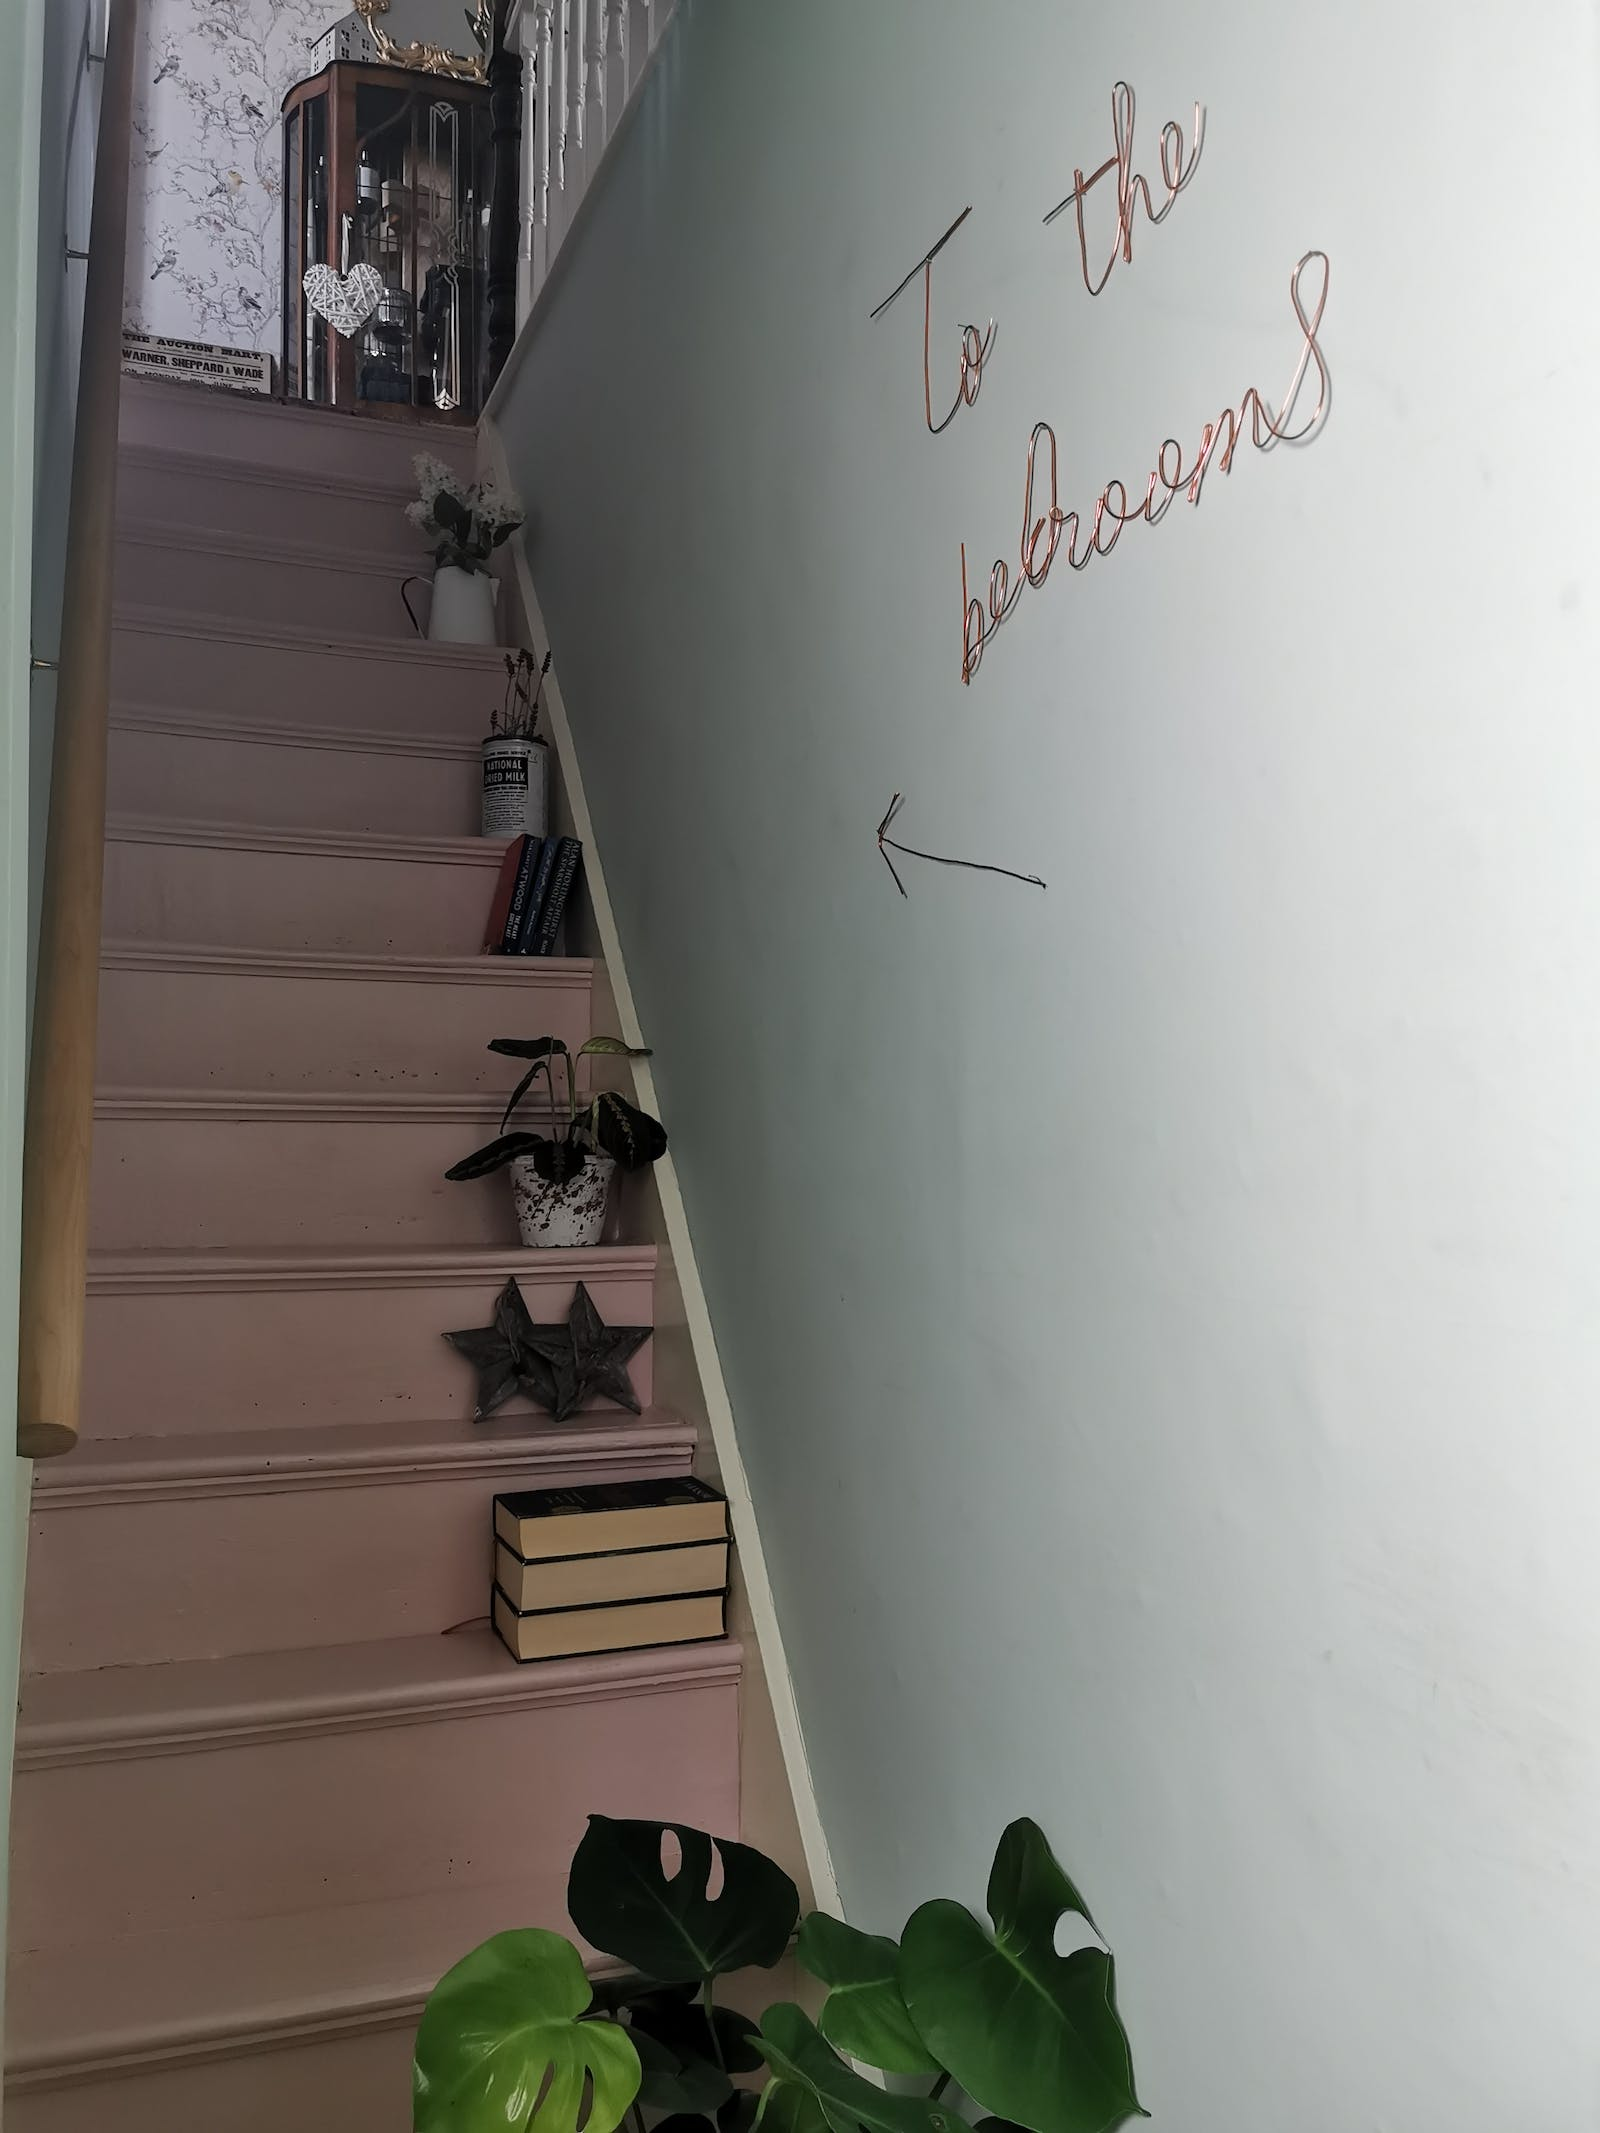 Narrow stairs painted in pink with a neon sign on the wall that says 'To the bedrooms'